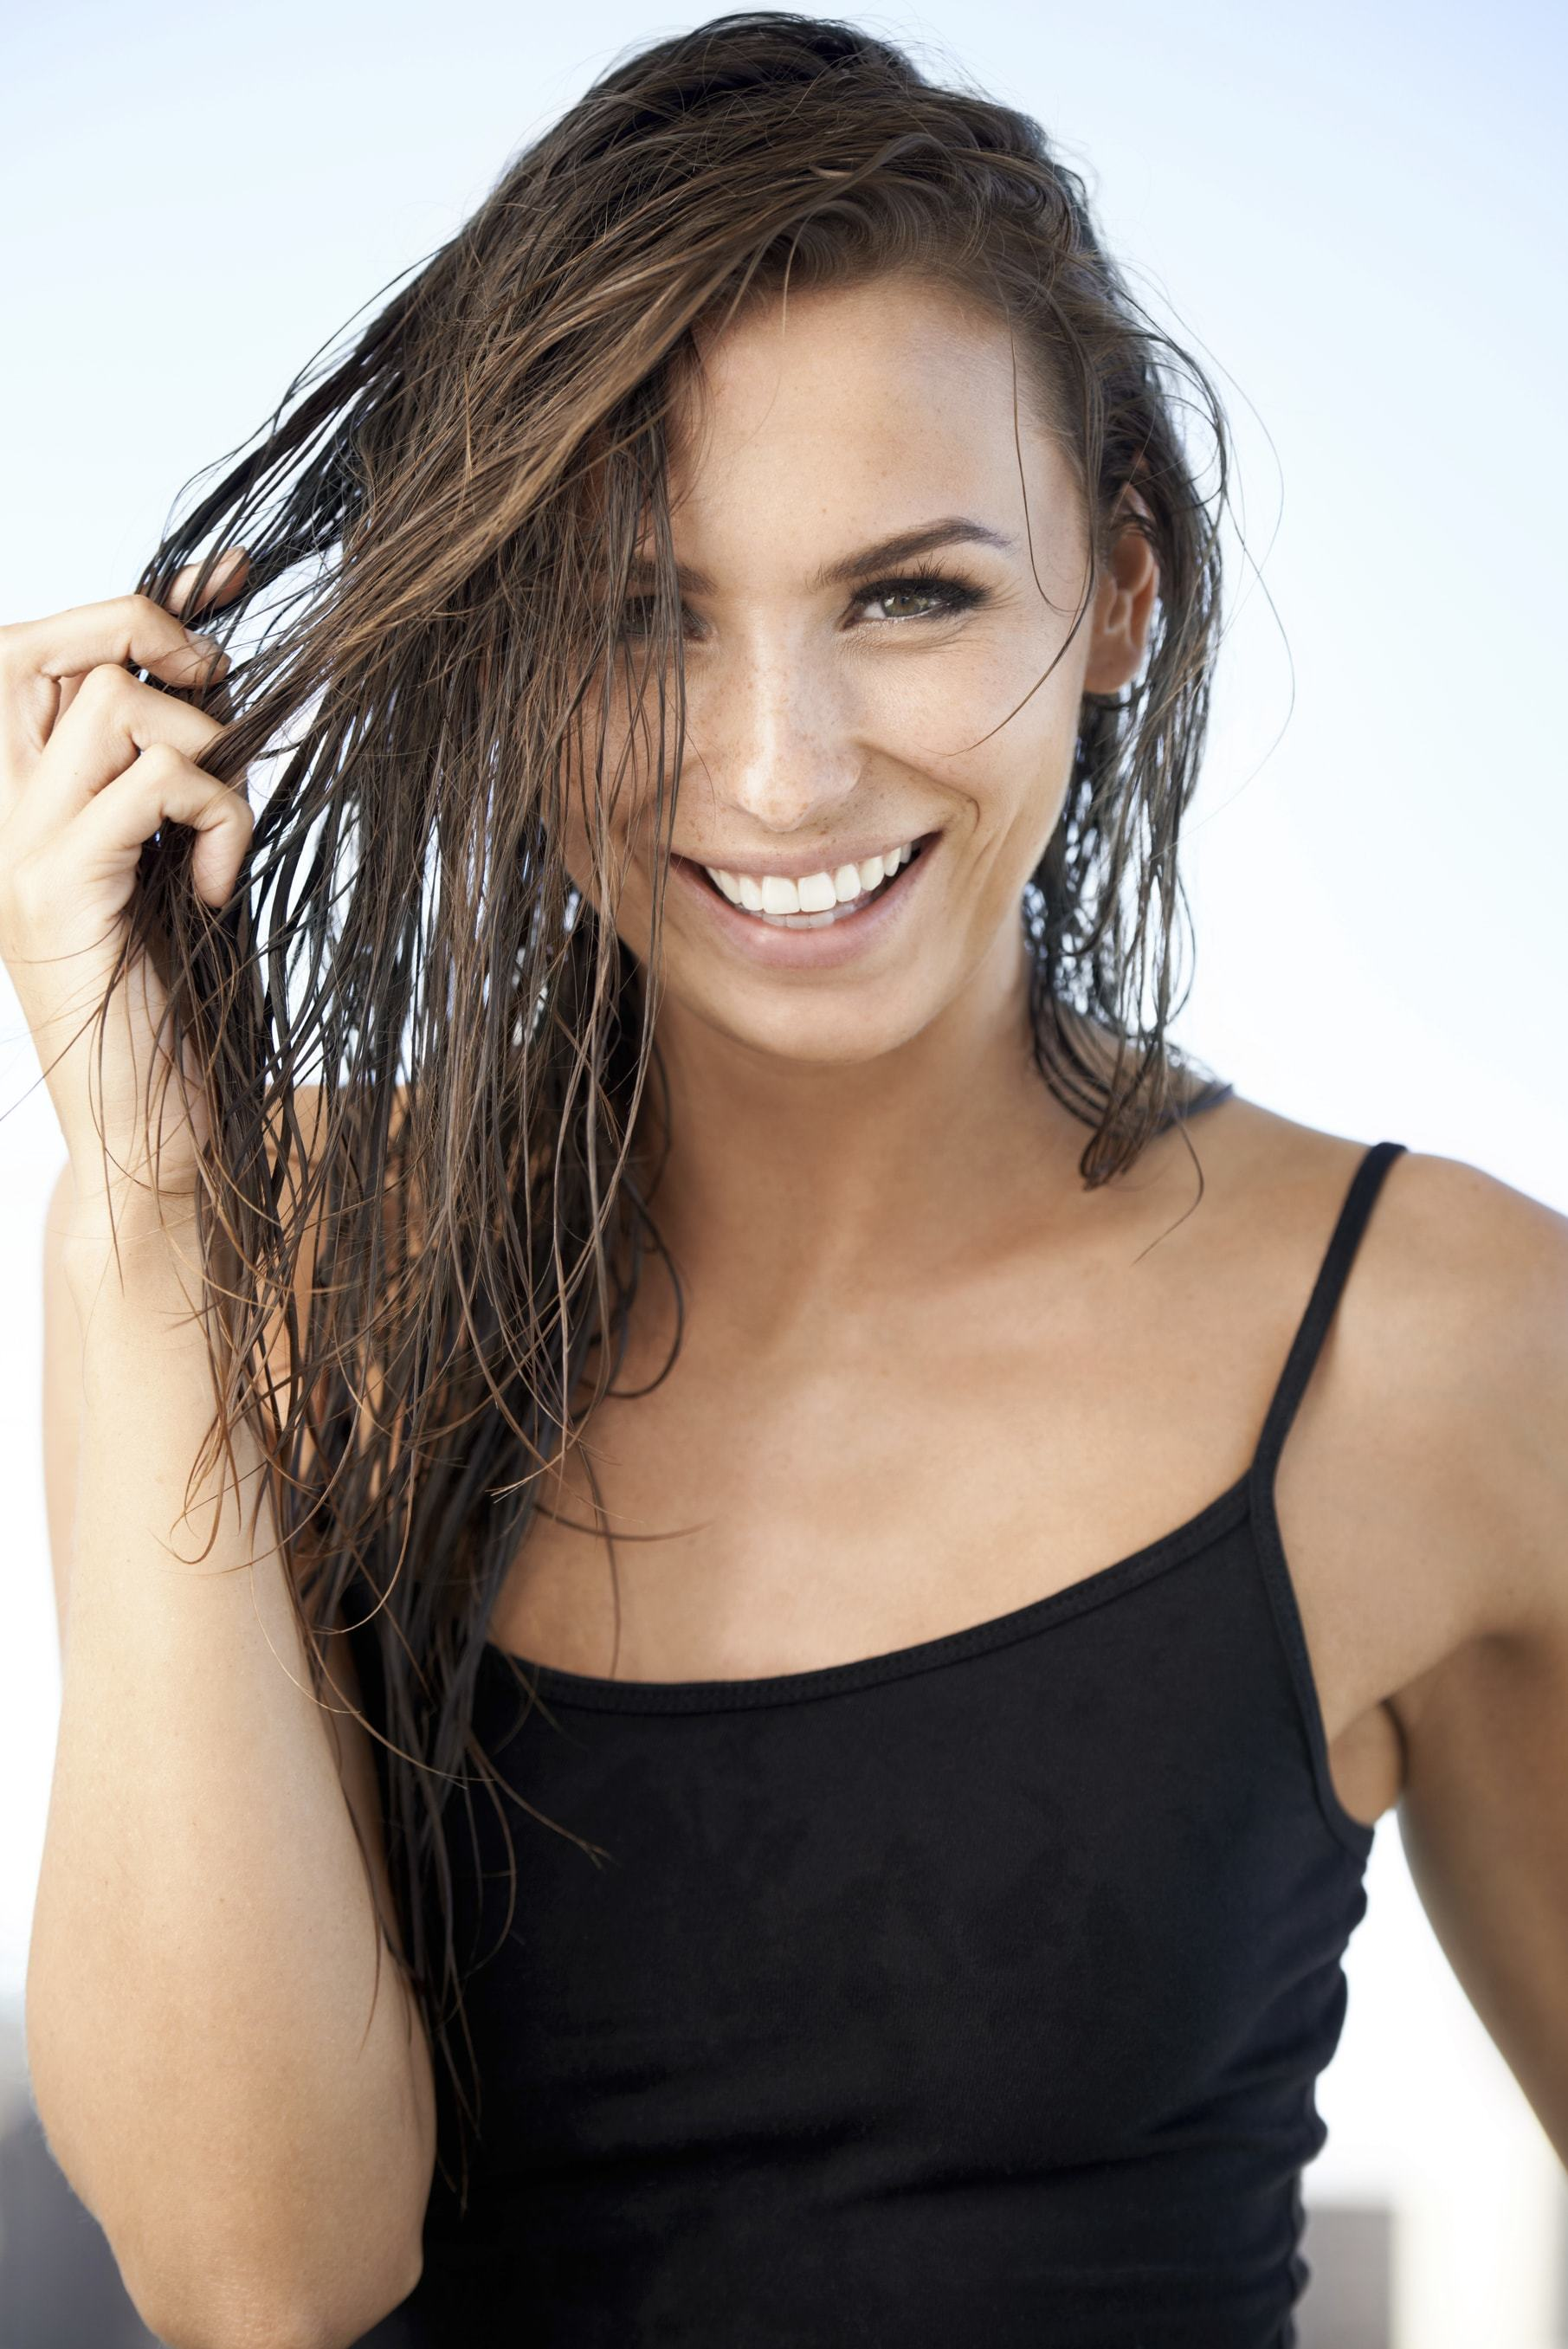 Flat hair solutions woman smiling into the camera with wet hair